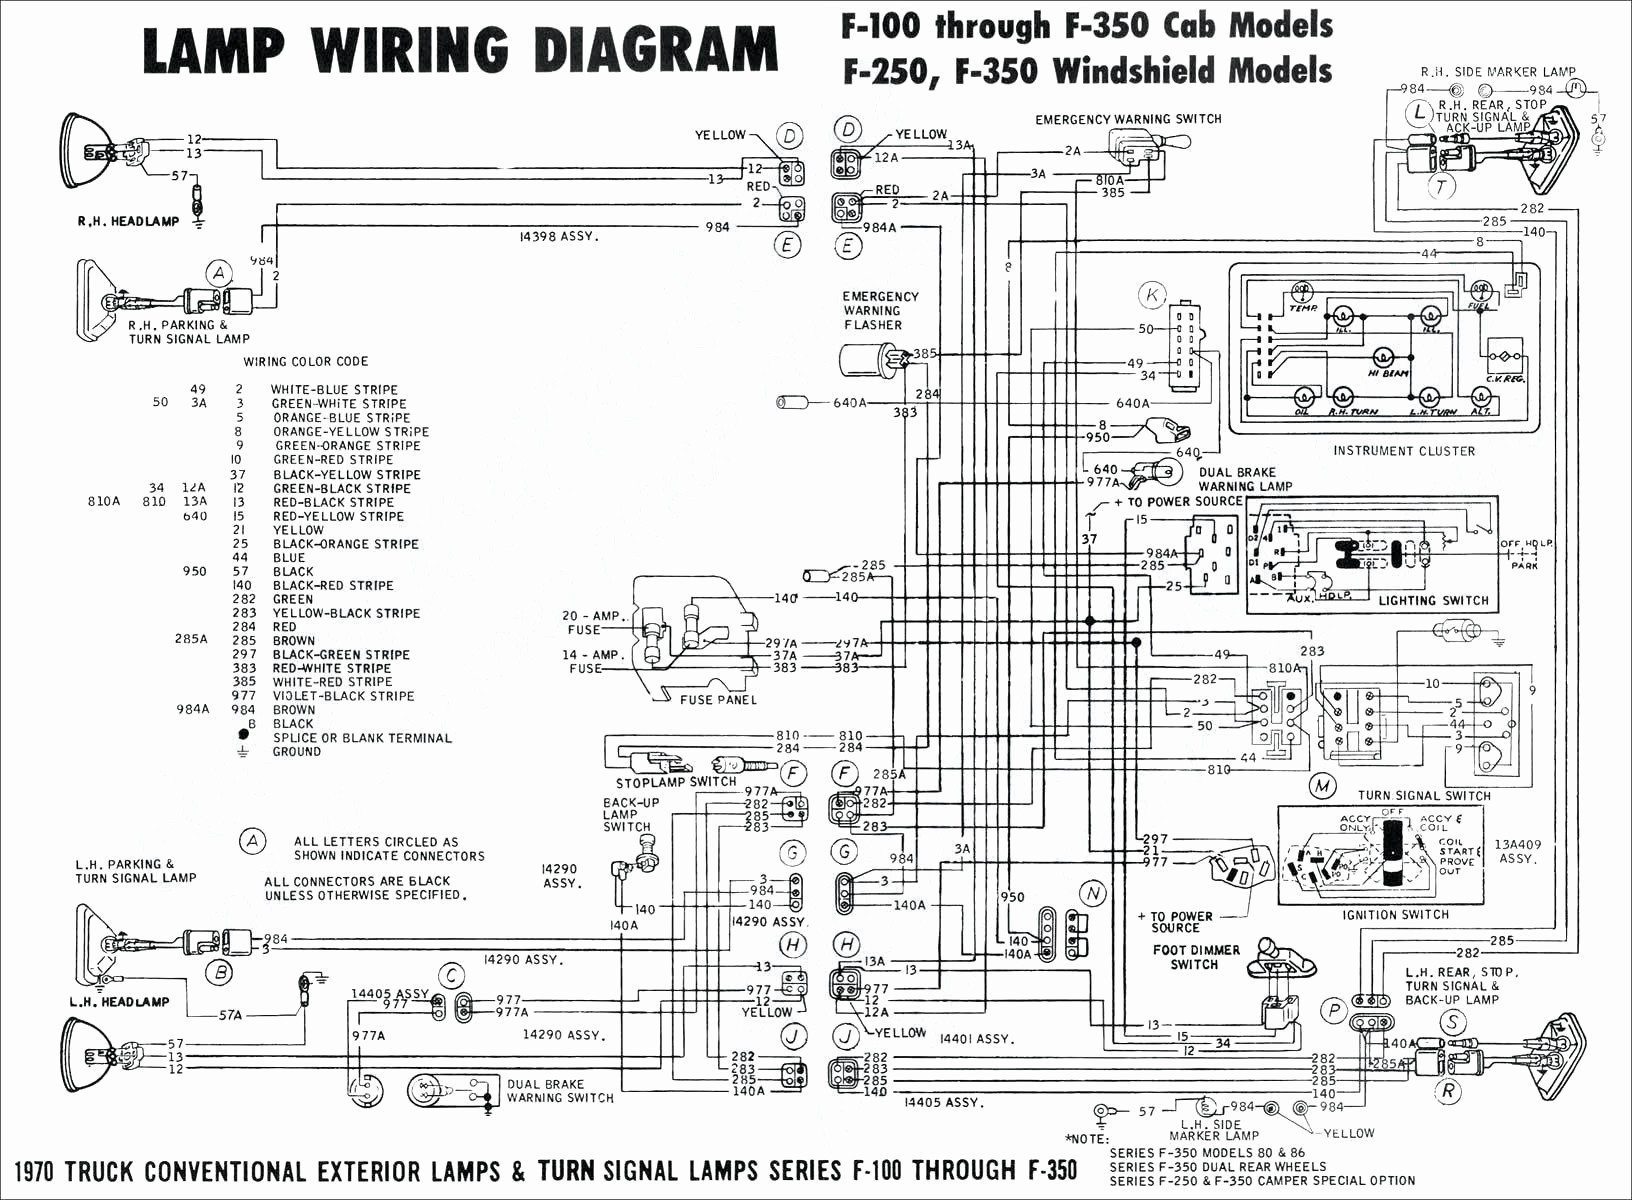 chevy silverado tail light wiring diagram collection wiring 1995 chevy k1500 wiring-diagram hvac chevy silverado tail light wiring diagram download brake light wiring diagram chevy manual new tail